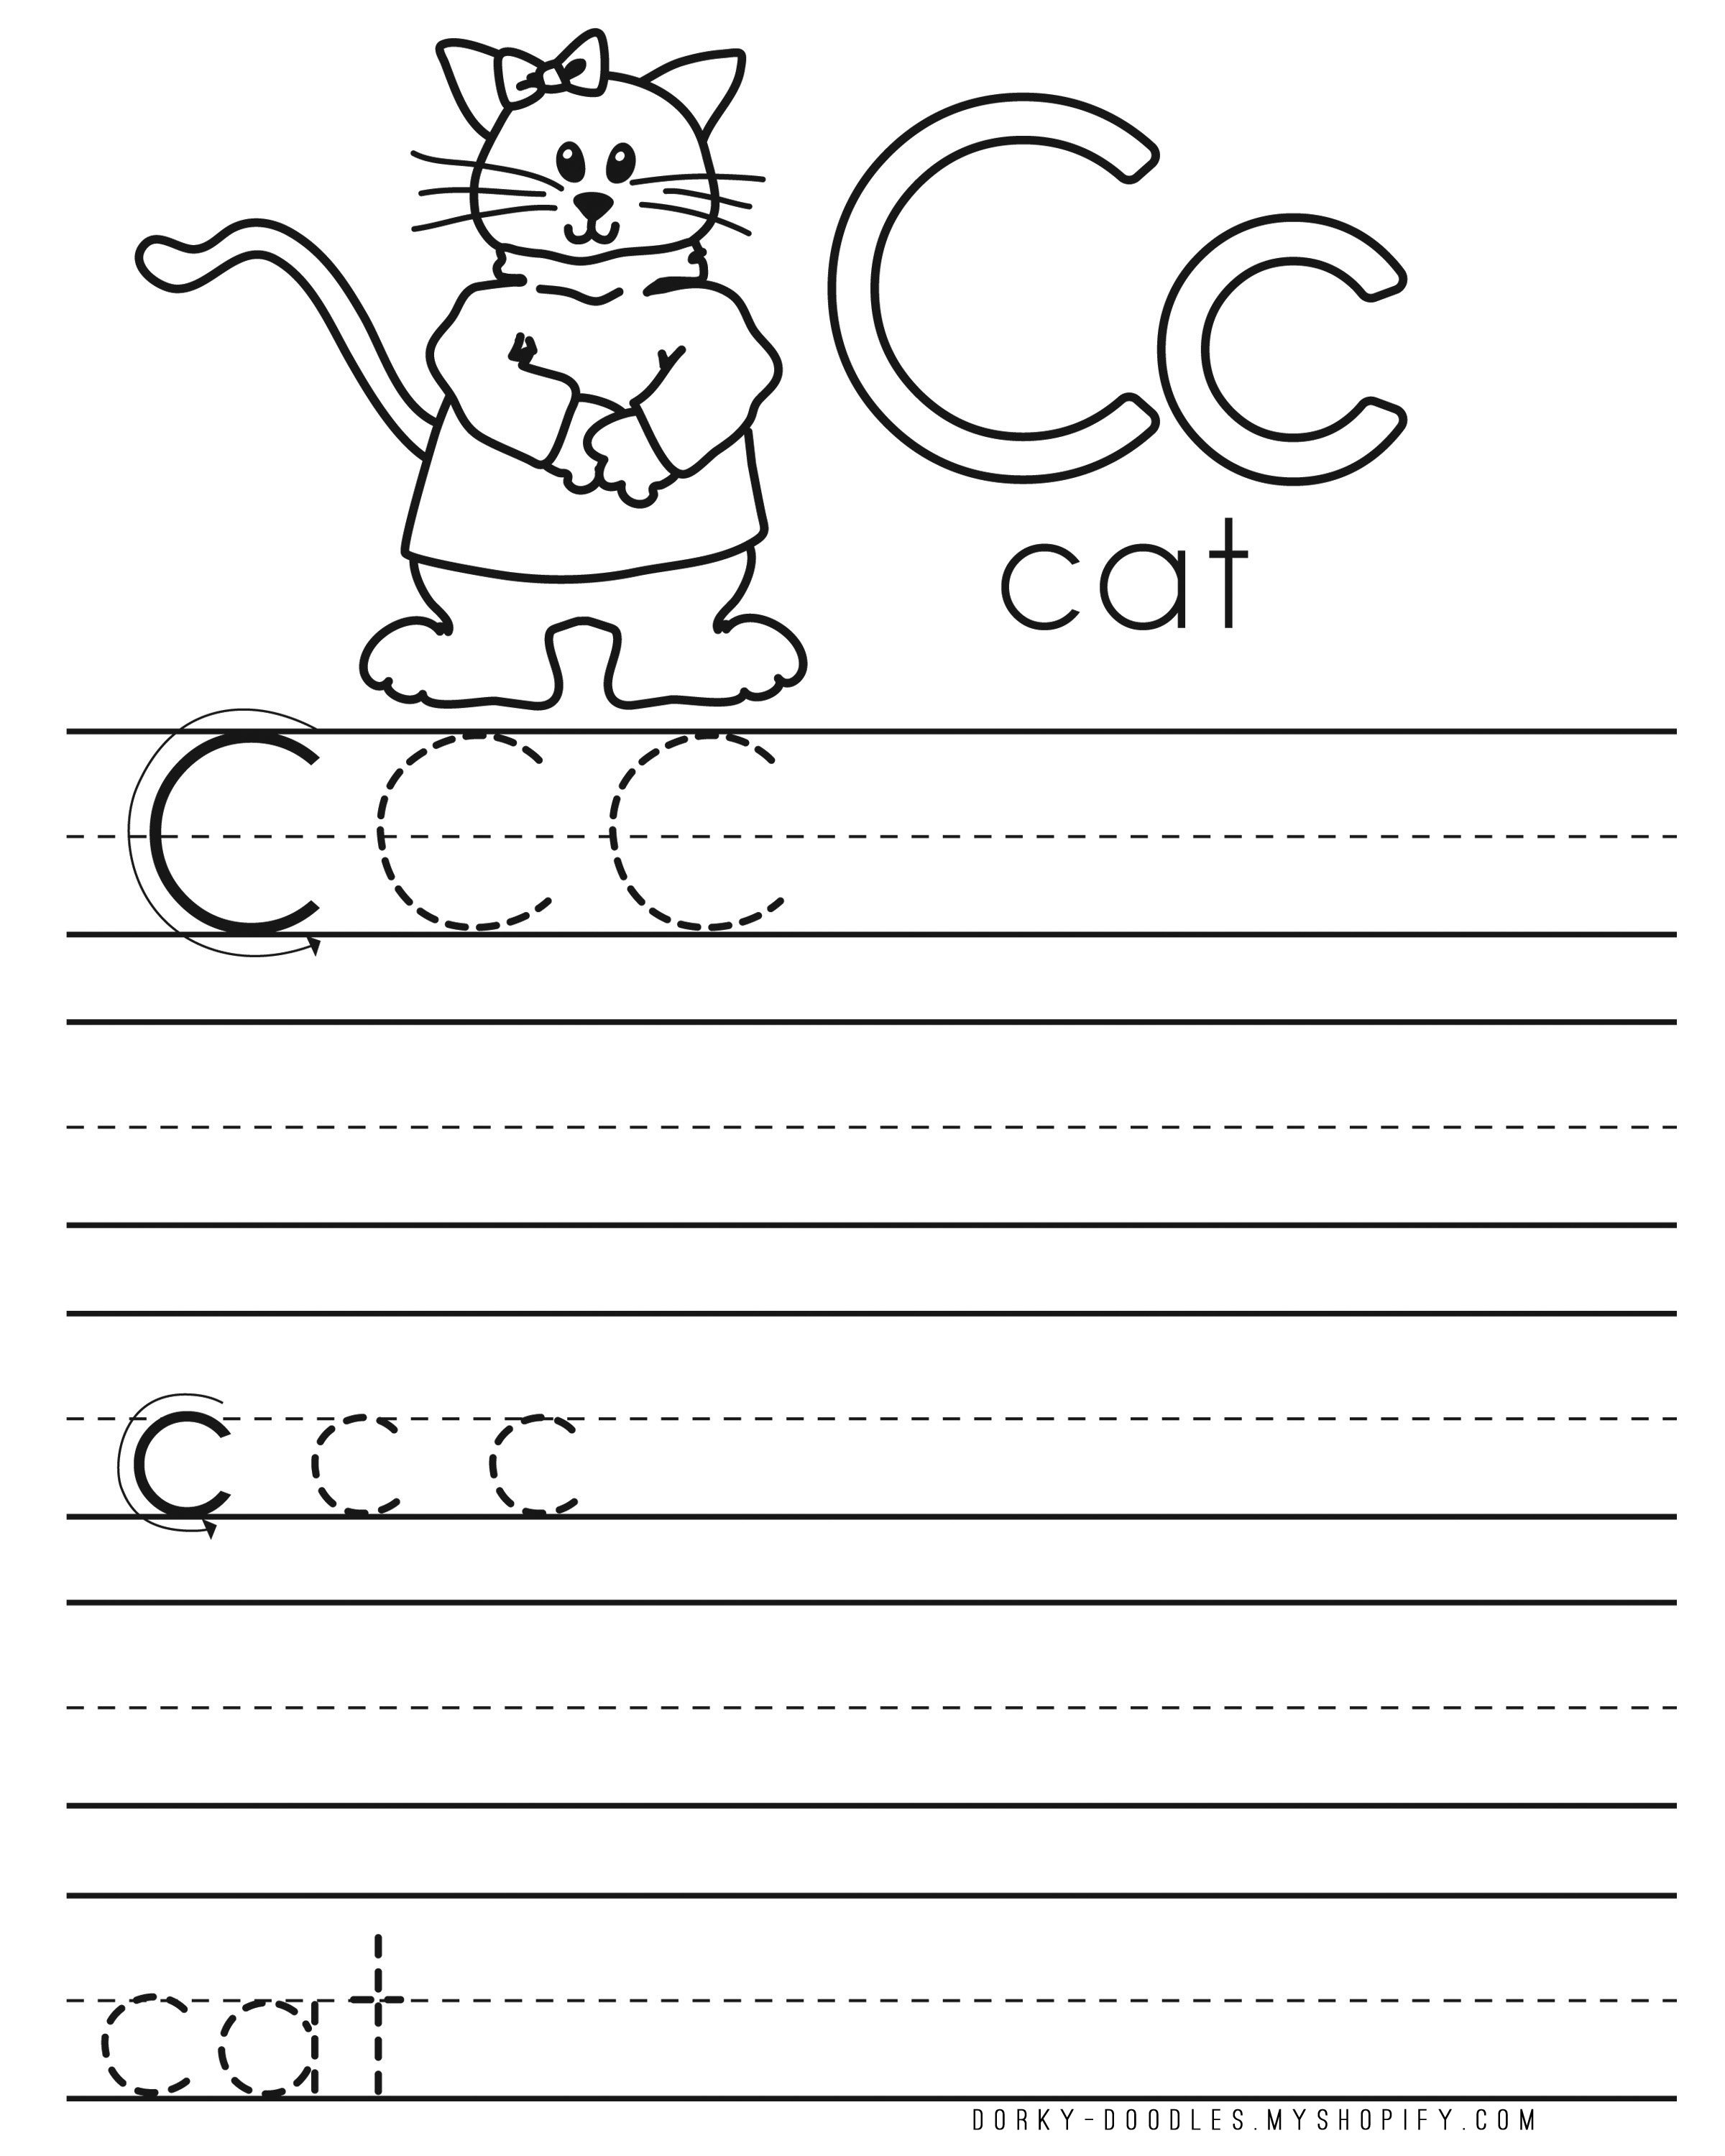 coloring preschool letter c worksheets letter c is for clown coloring page free printable letter preschool coloring worksheets c